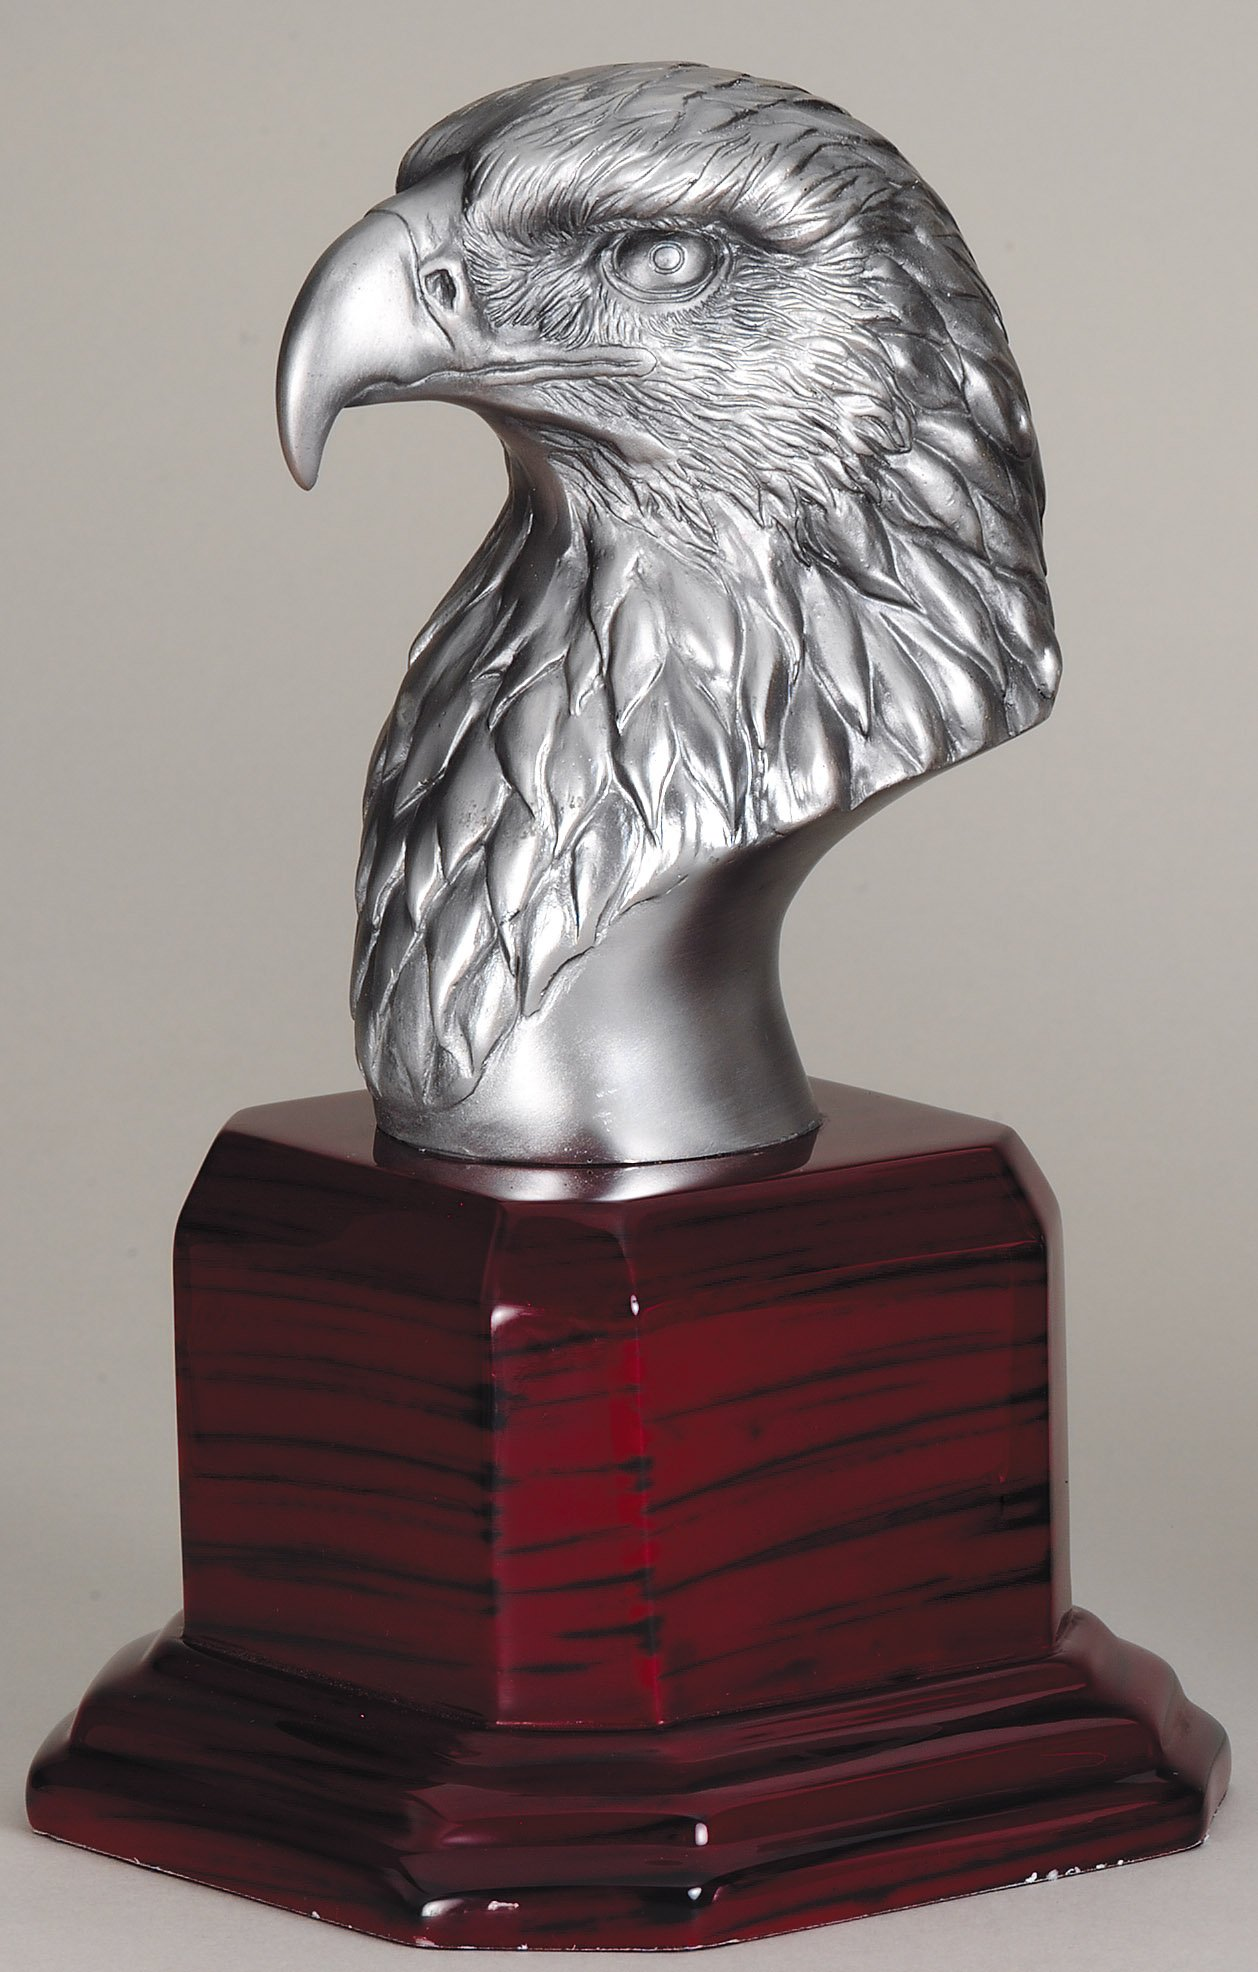 8.5 inch American eagle head and rosewood base - AE210